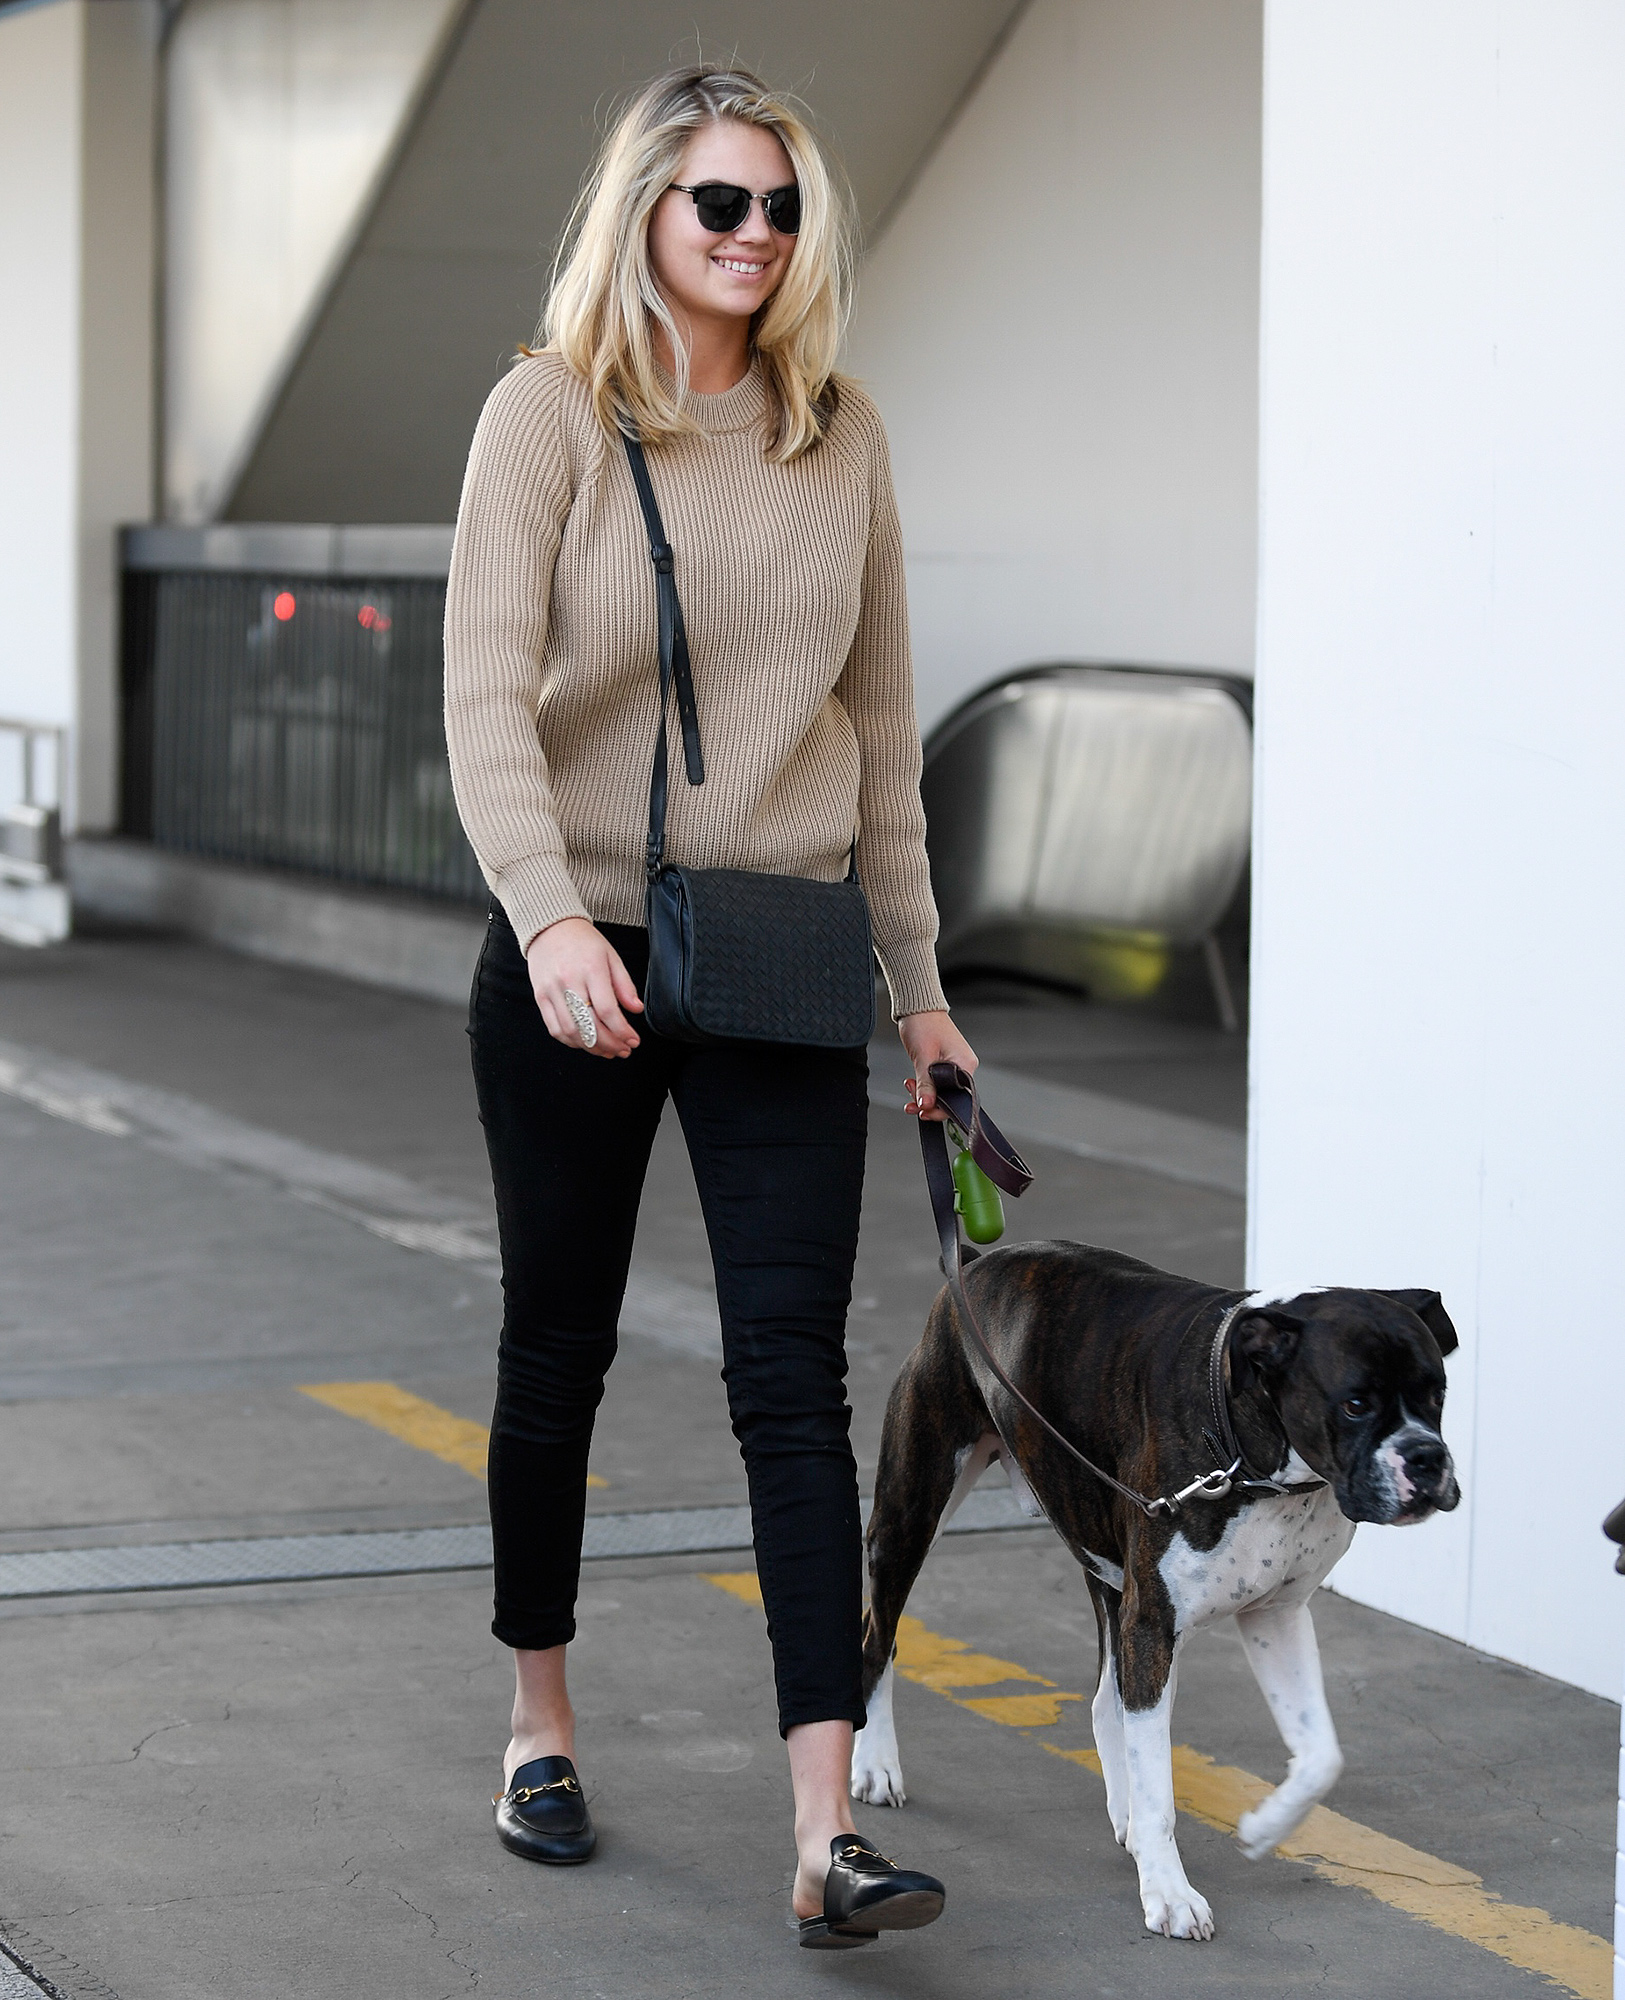 EXCLUSIVE: Kate Upton and her dog catch a flight out of LAX Airport